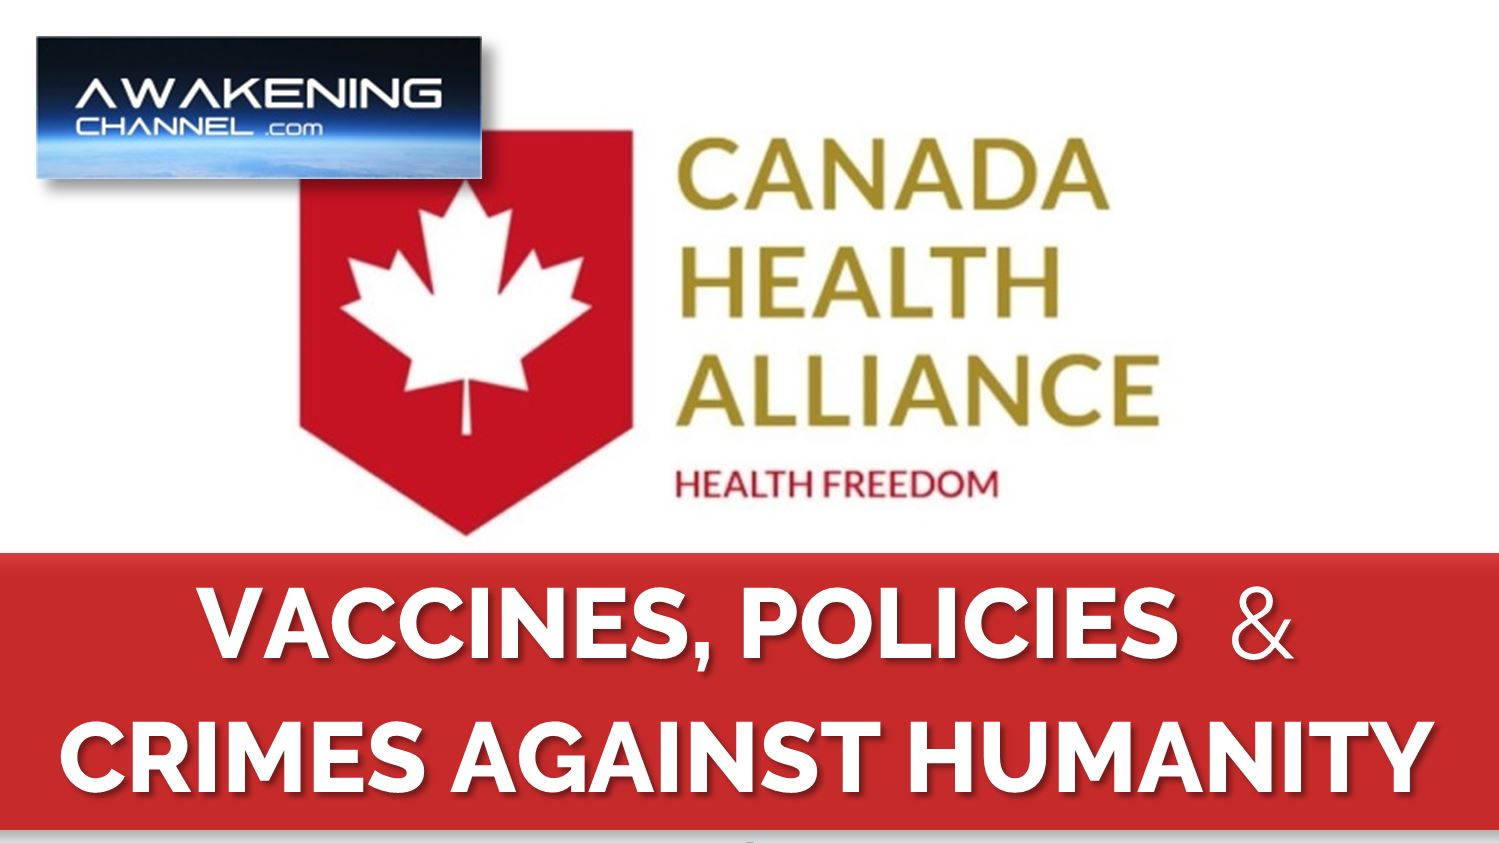 Vaccines, Policies & Crimes Against Humanity